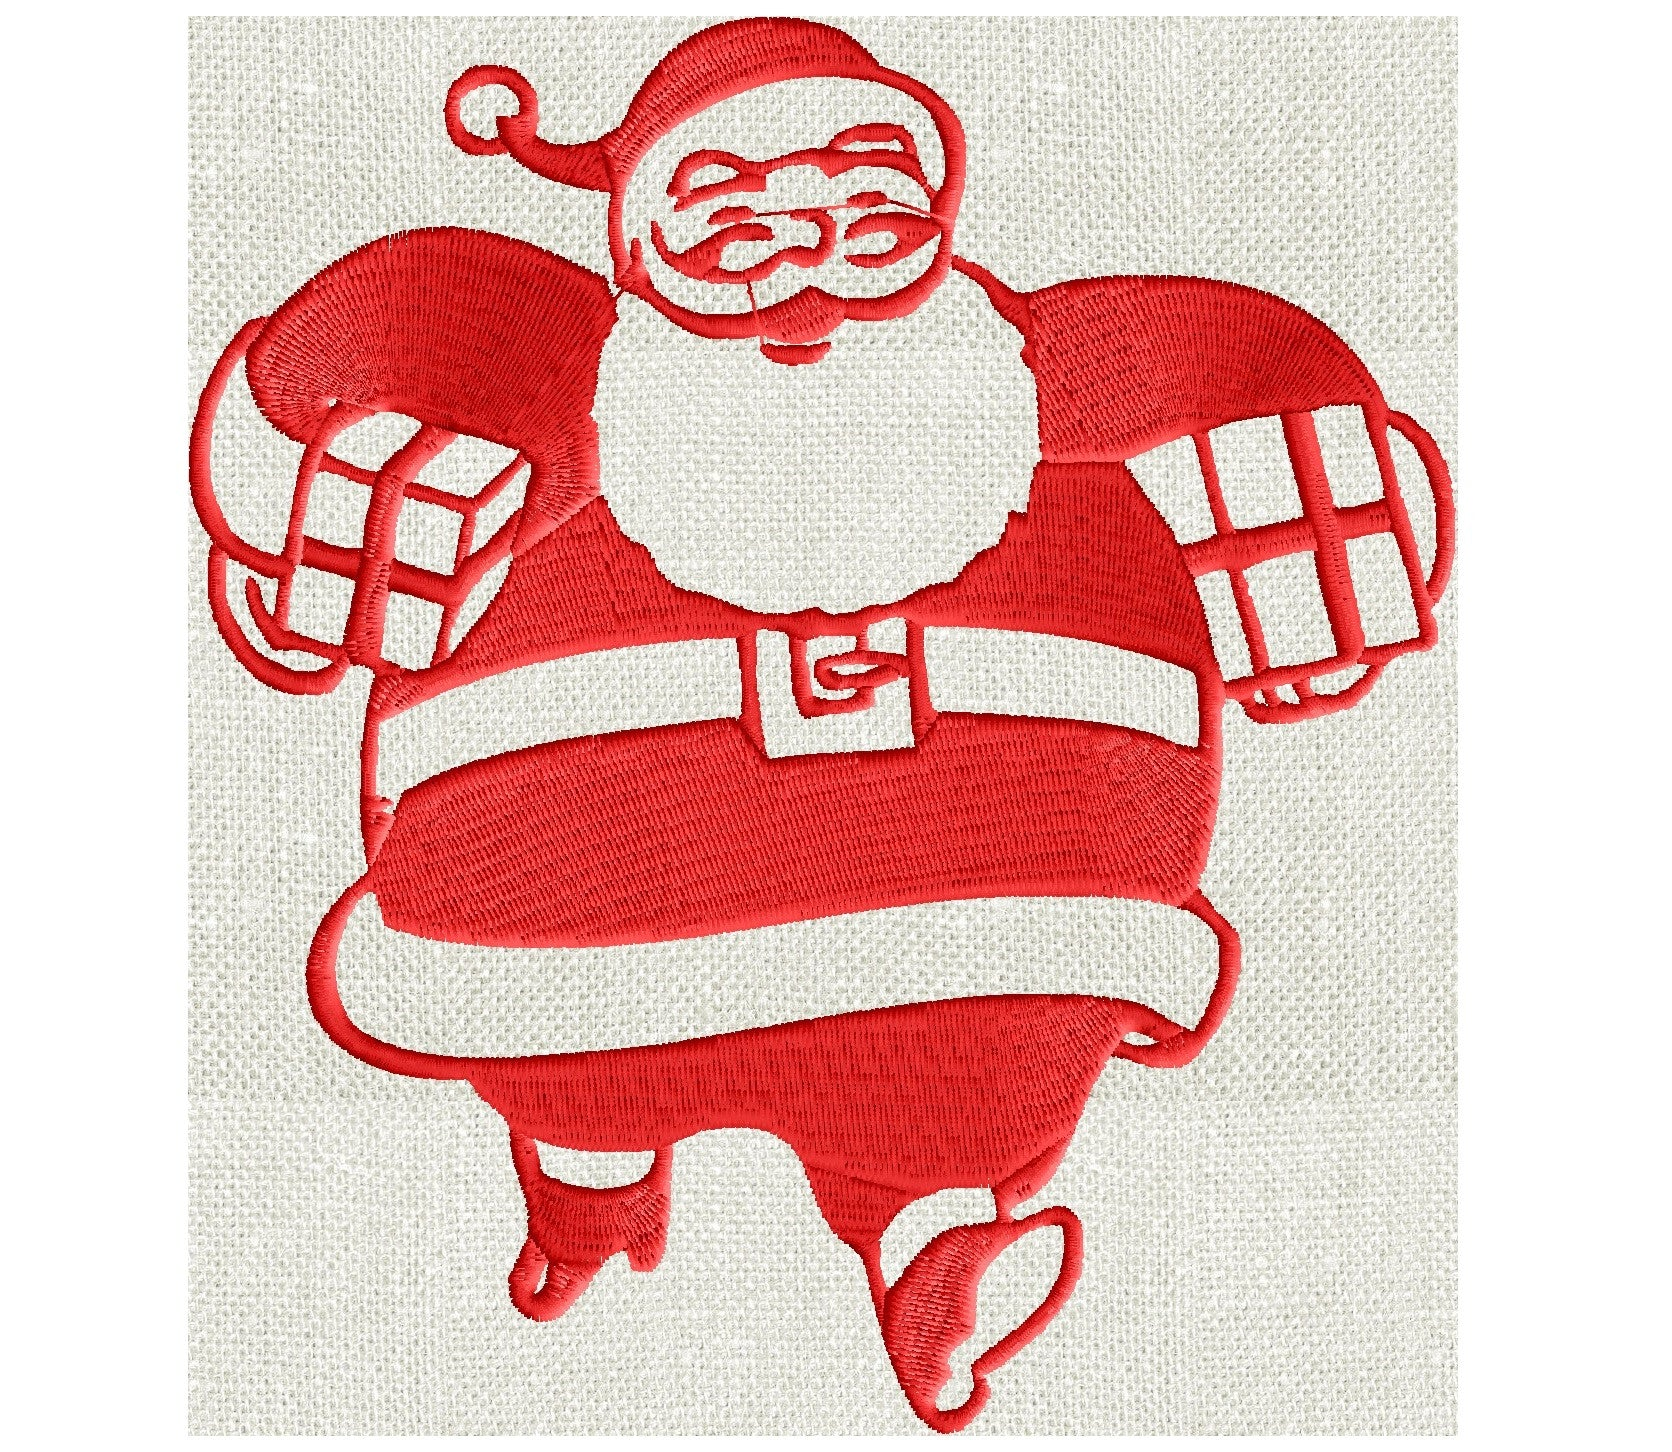 Santa Clause Christmas - retro vintage - EMBROIDERY DESIGN FILE- Instant download - Hus Exp Jef Vp3 Pes Dst - 2 sizes - 5x7 or 4x4 hoops